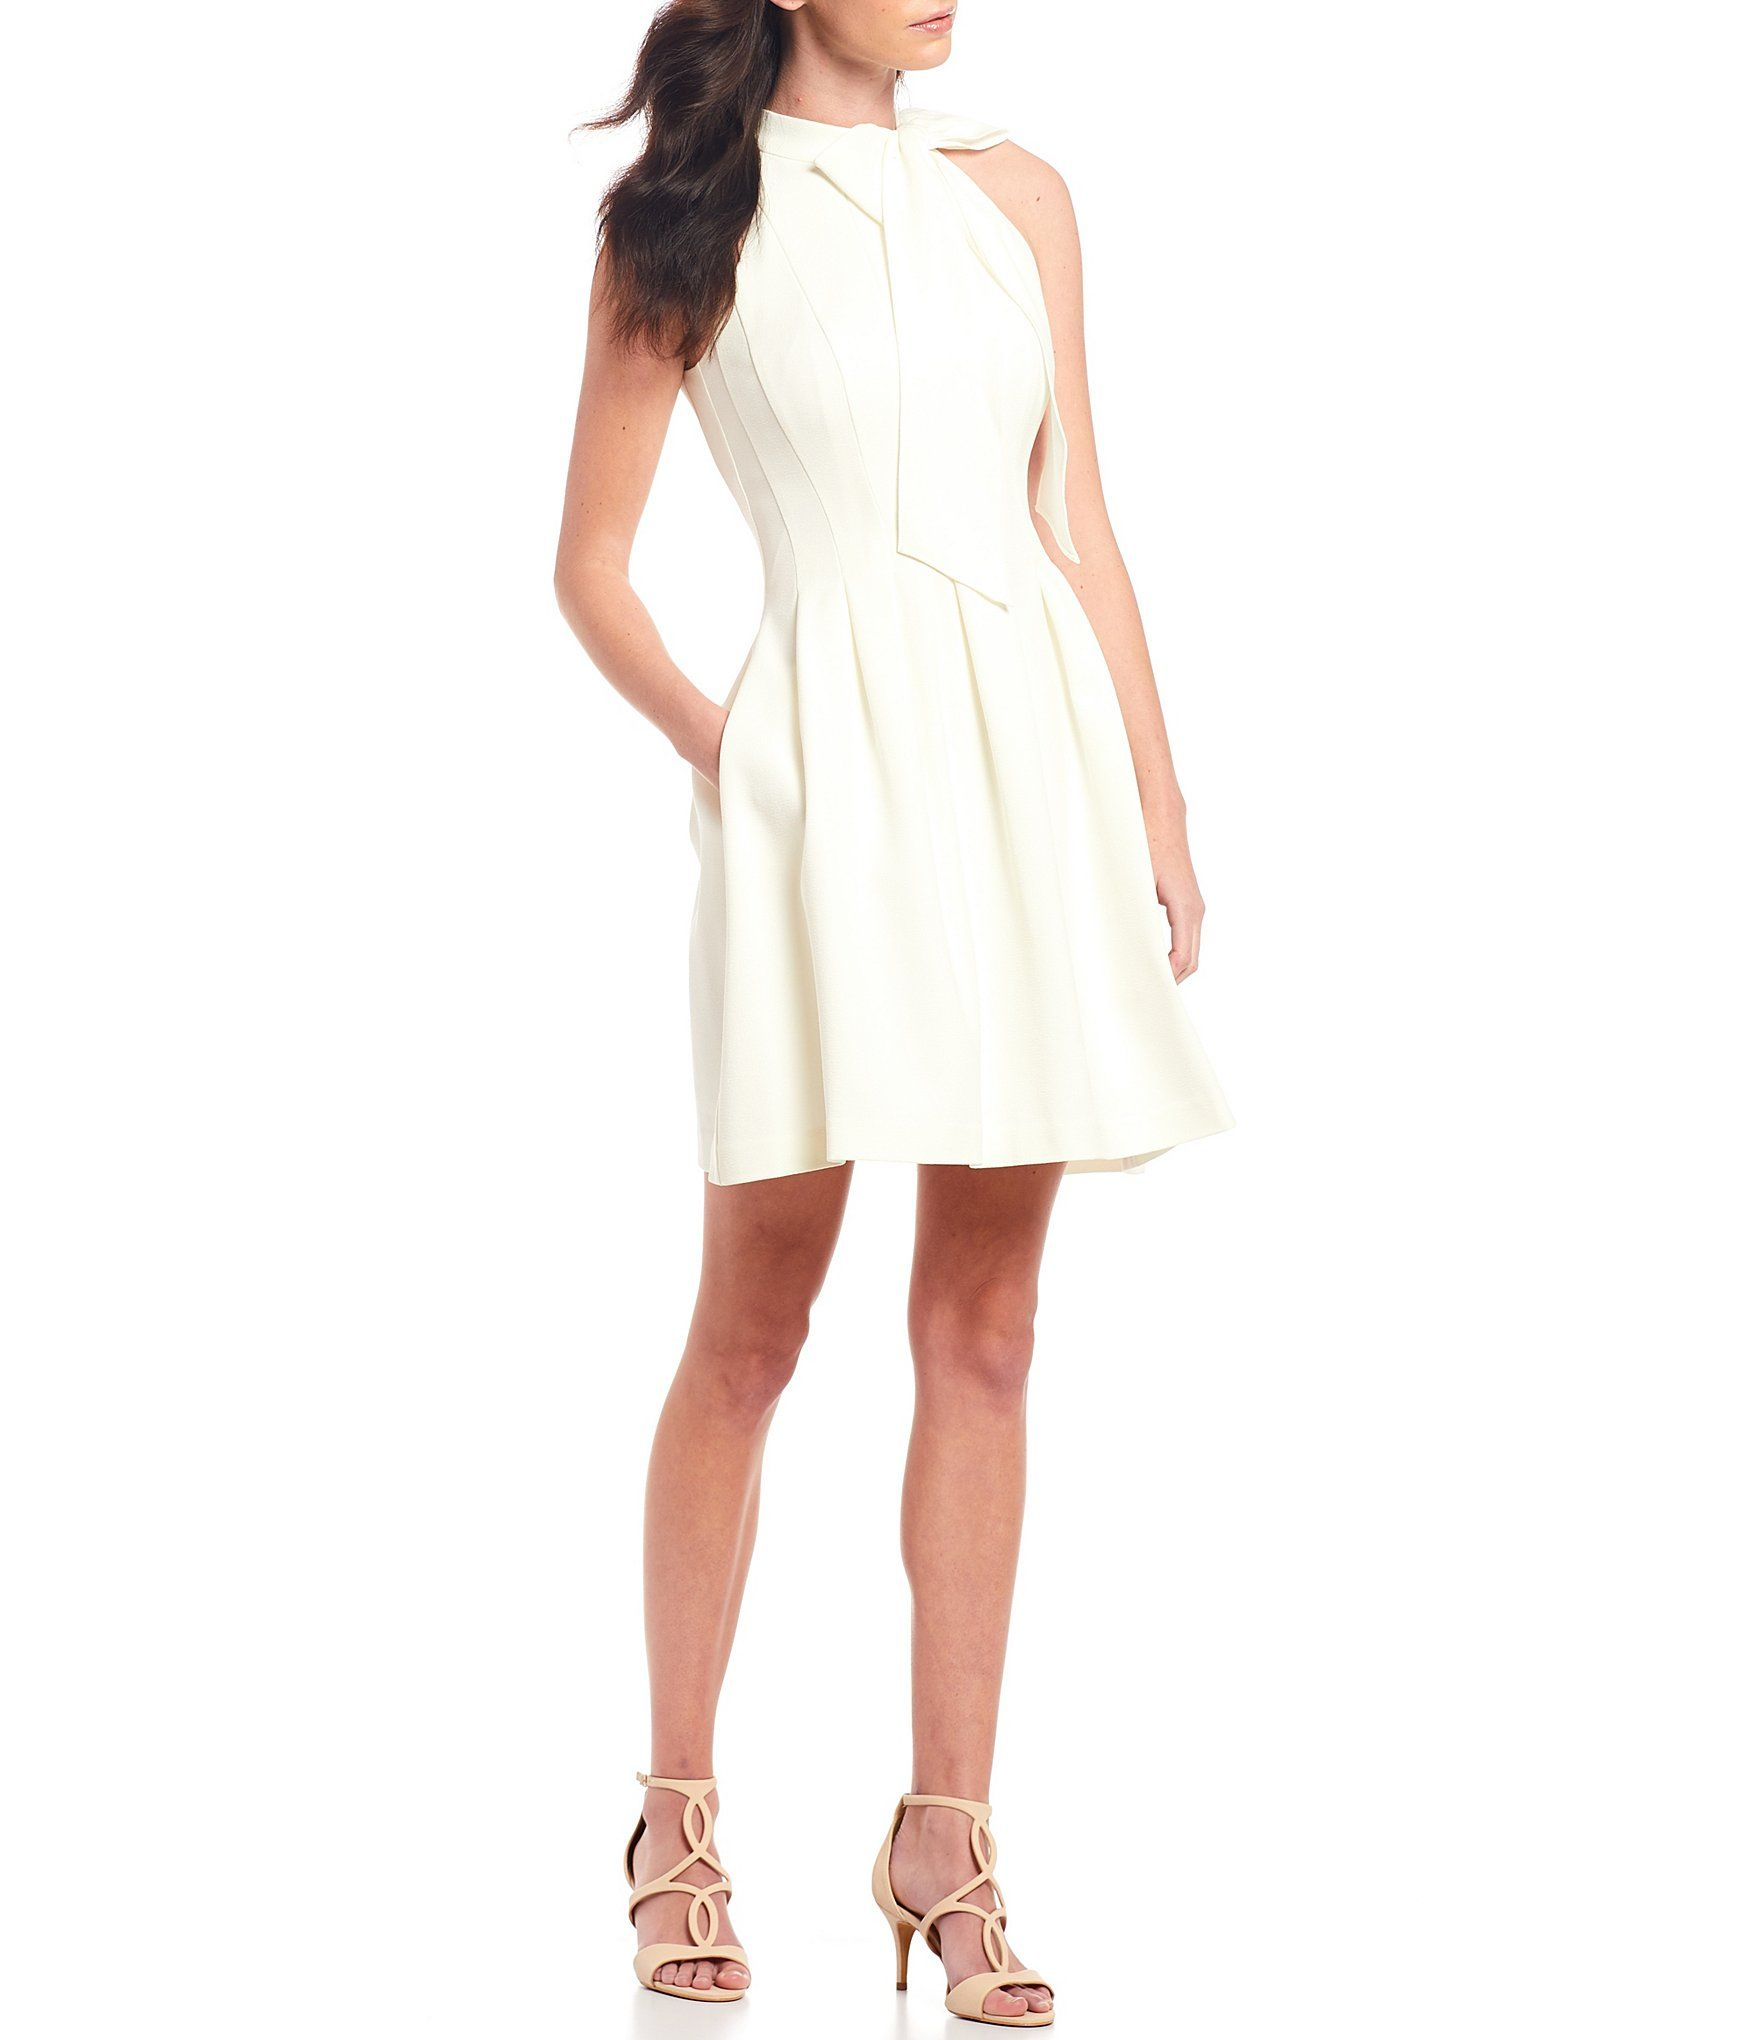 Vince Camuto Sleeveless Bow Neck Fit And Flare Dress Dillard S Fit And Flare Dress Flare Dress Casual Dresses [ 2040 x 1760 Pixel ]